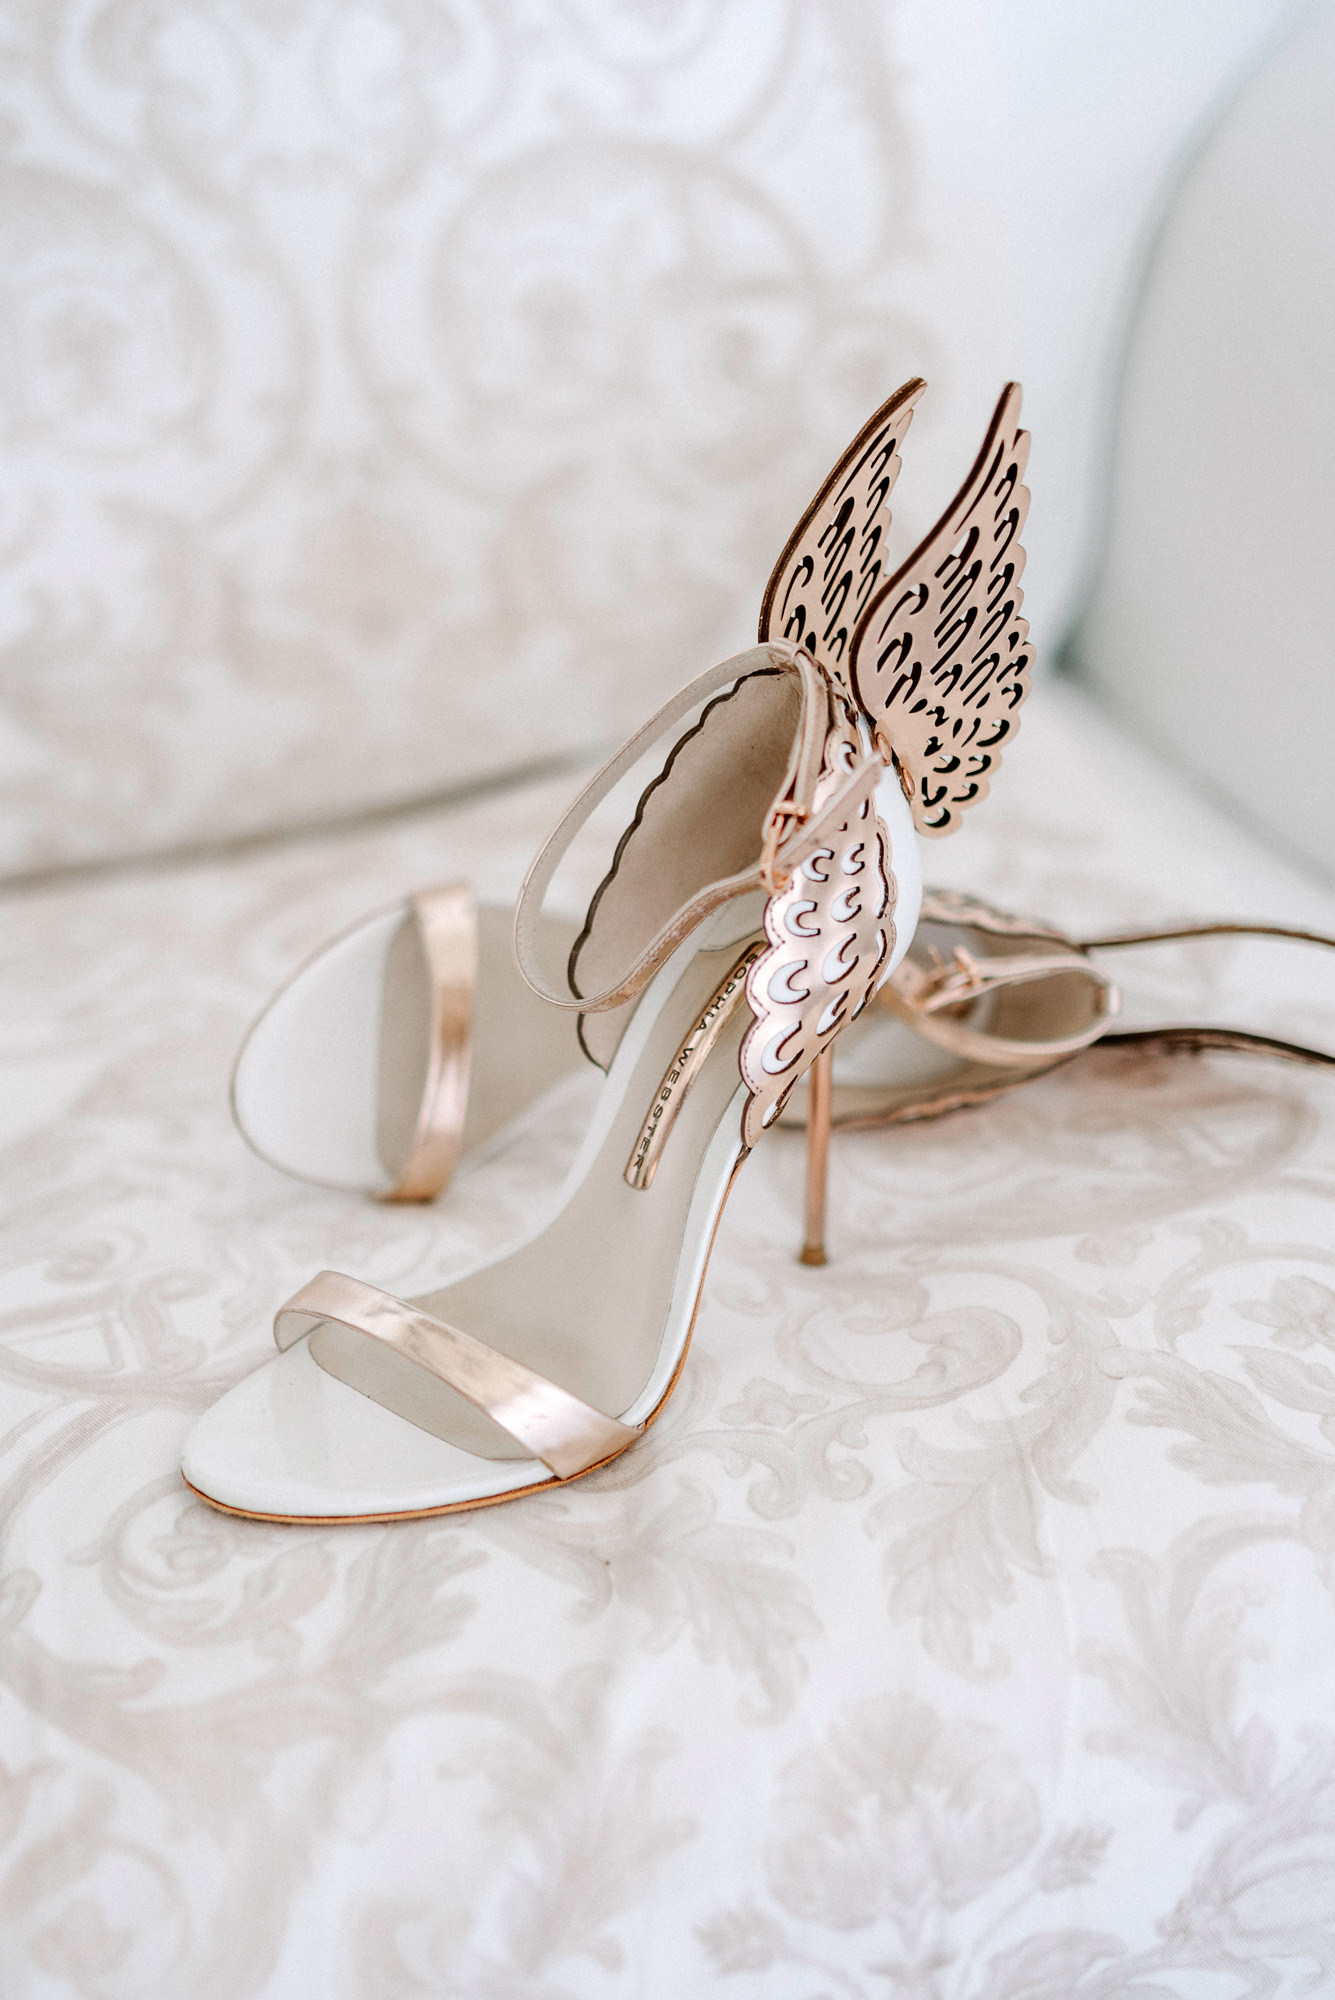 Sophia Webster angel wing sandals - Gianluca Adovasio Photography